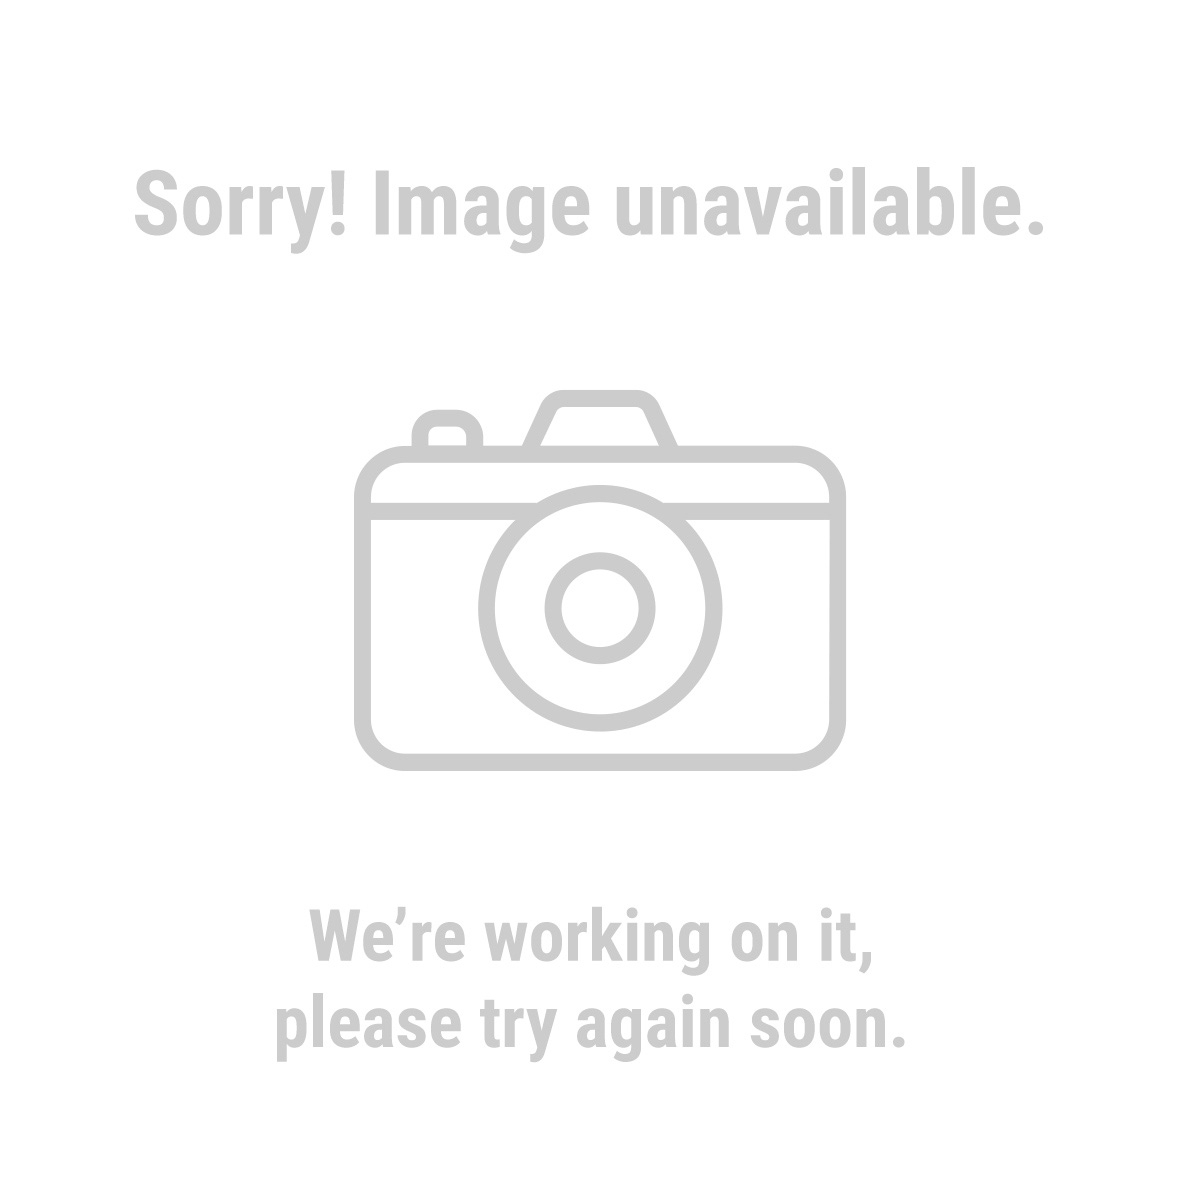 90747 $75 Harbor Freight Gift Card